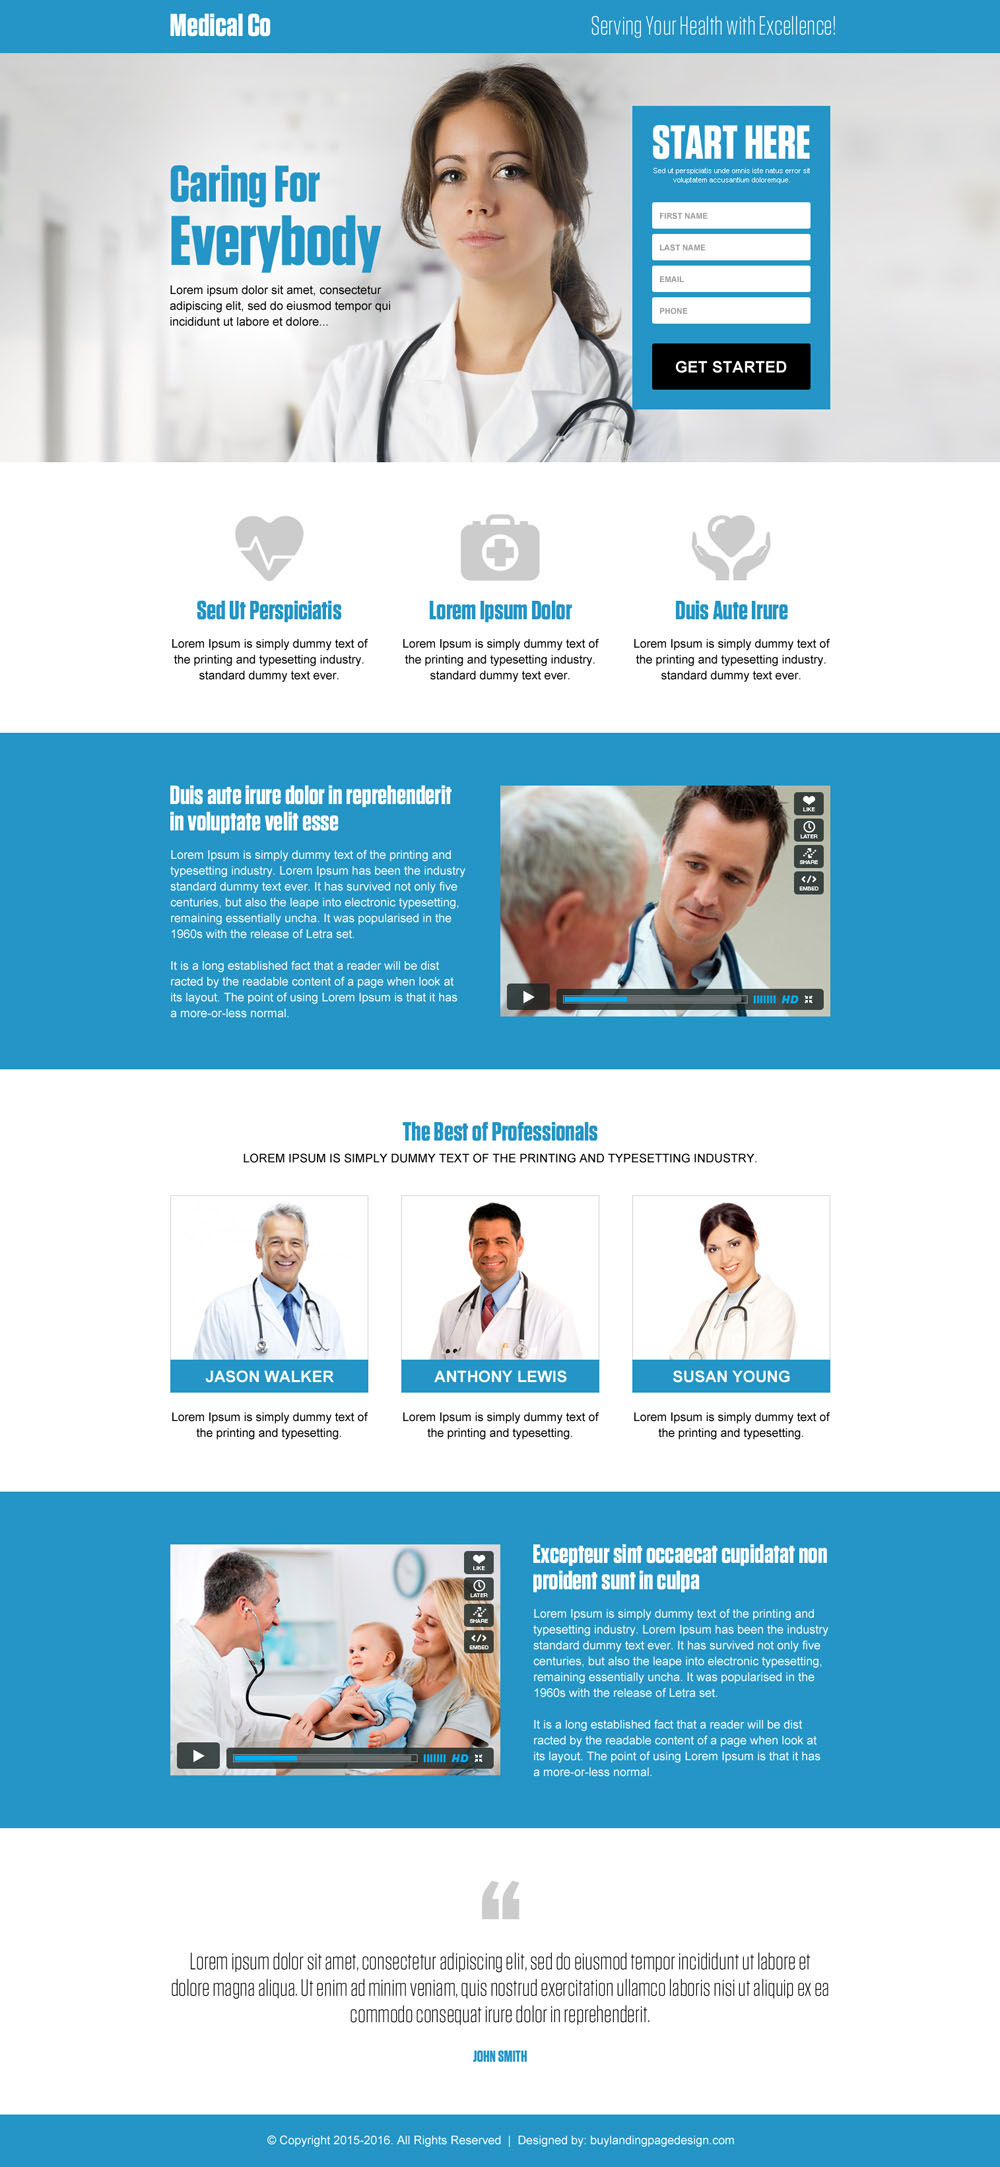 medical-company-lead-generation-converting-landing-page-design-019